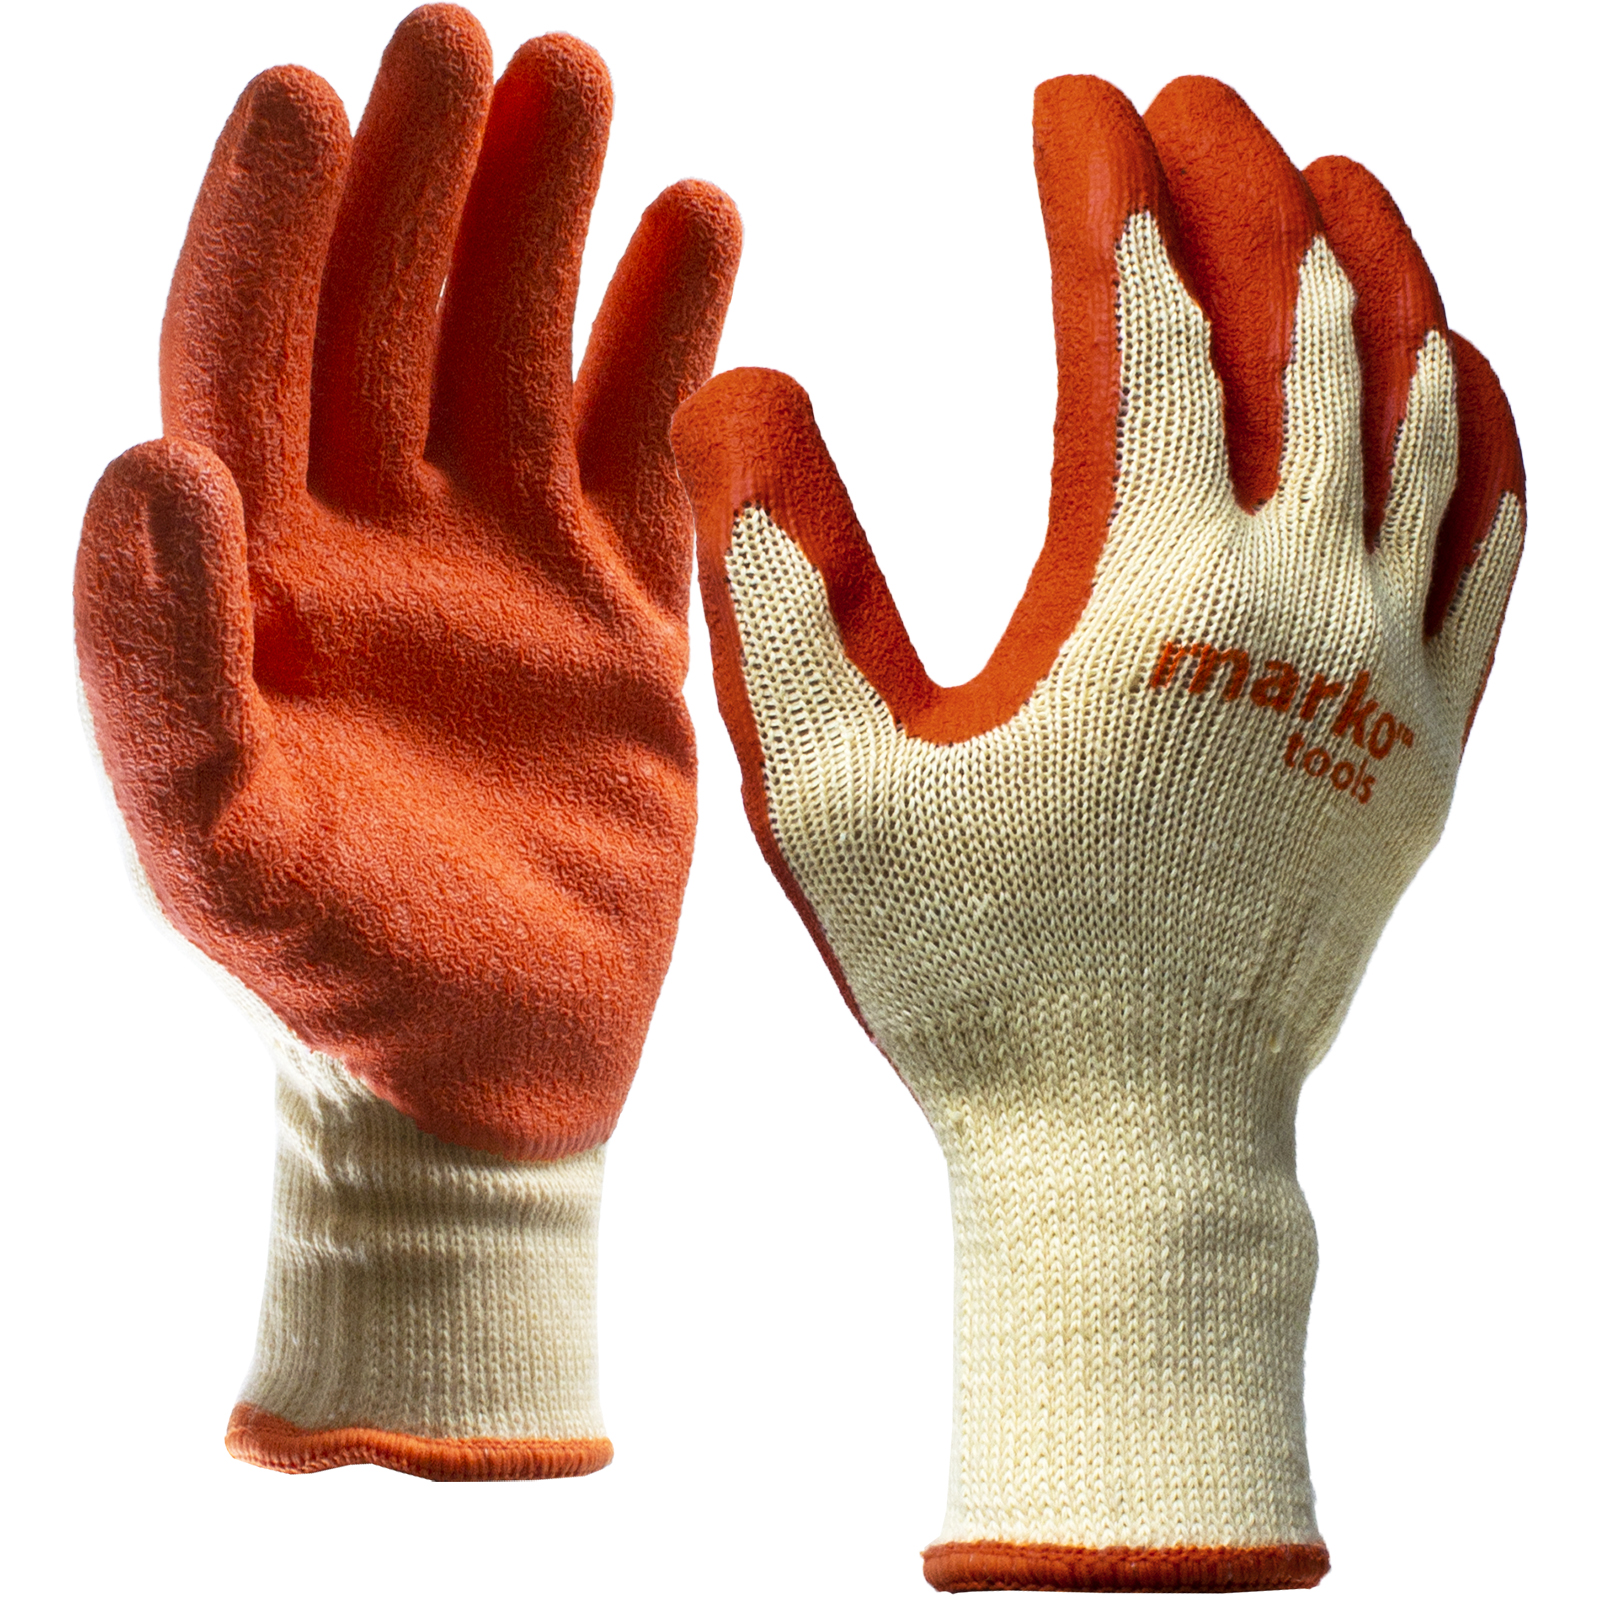 24 Pairs Latex Coated Orange Rubber Work Gloves Mens Safety Builders Gardening Large